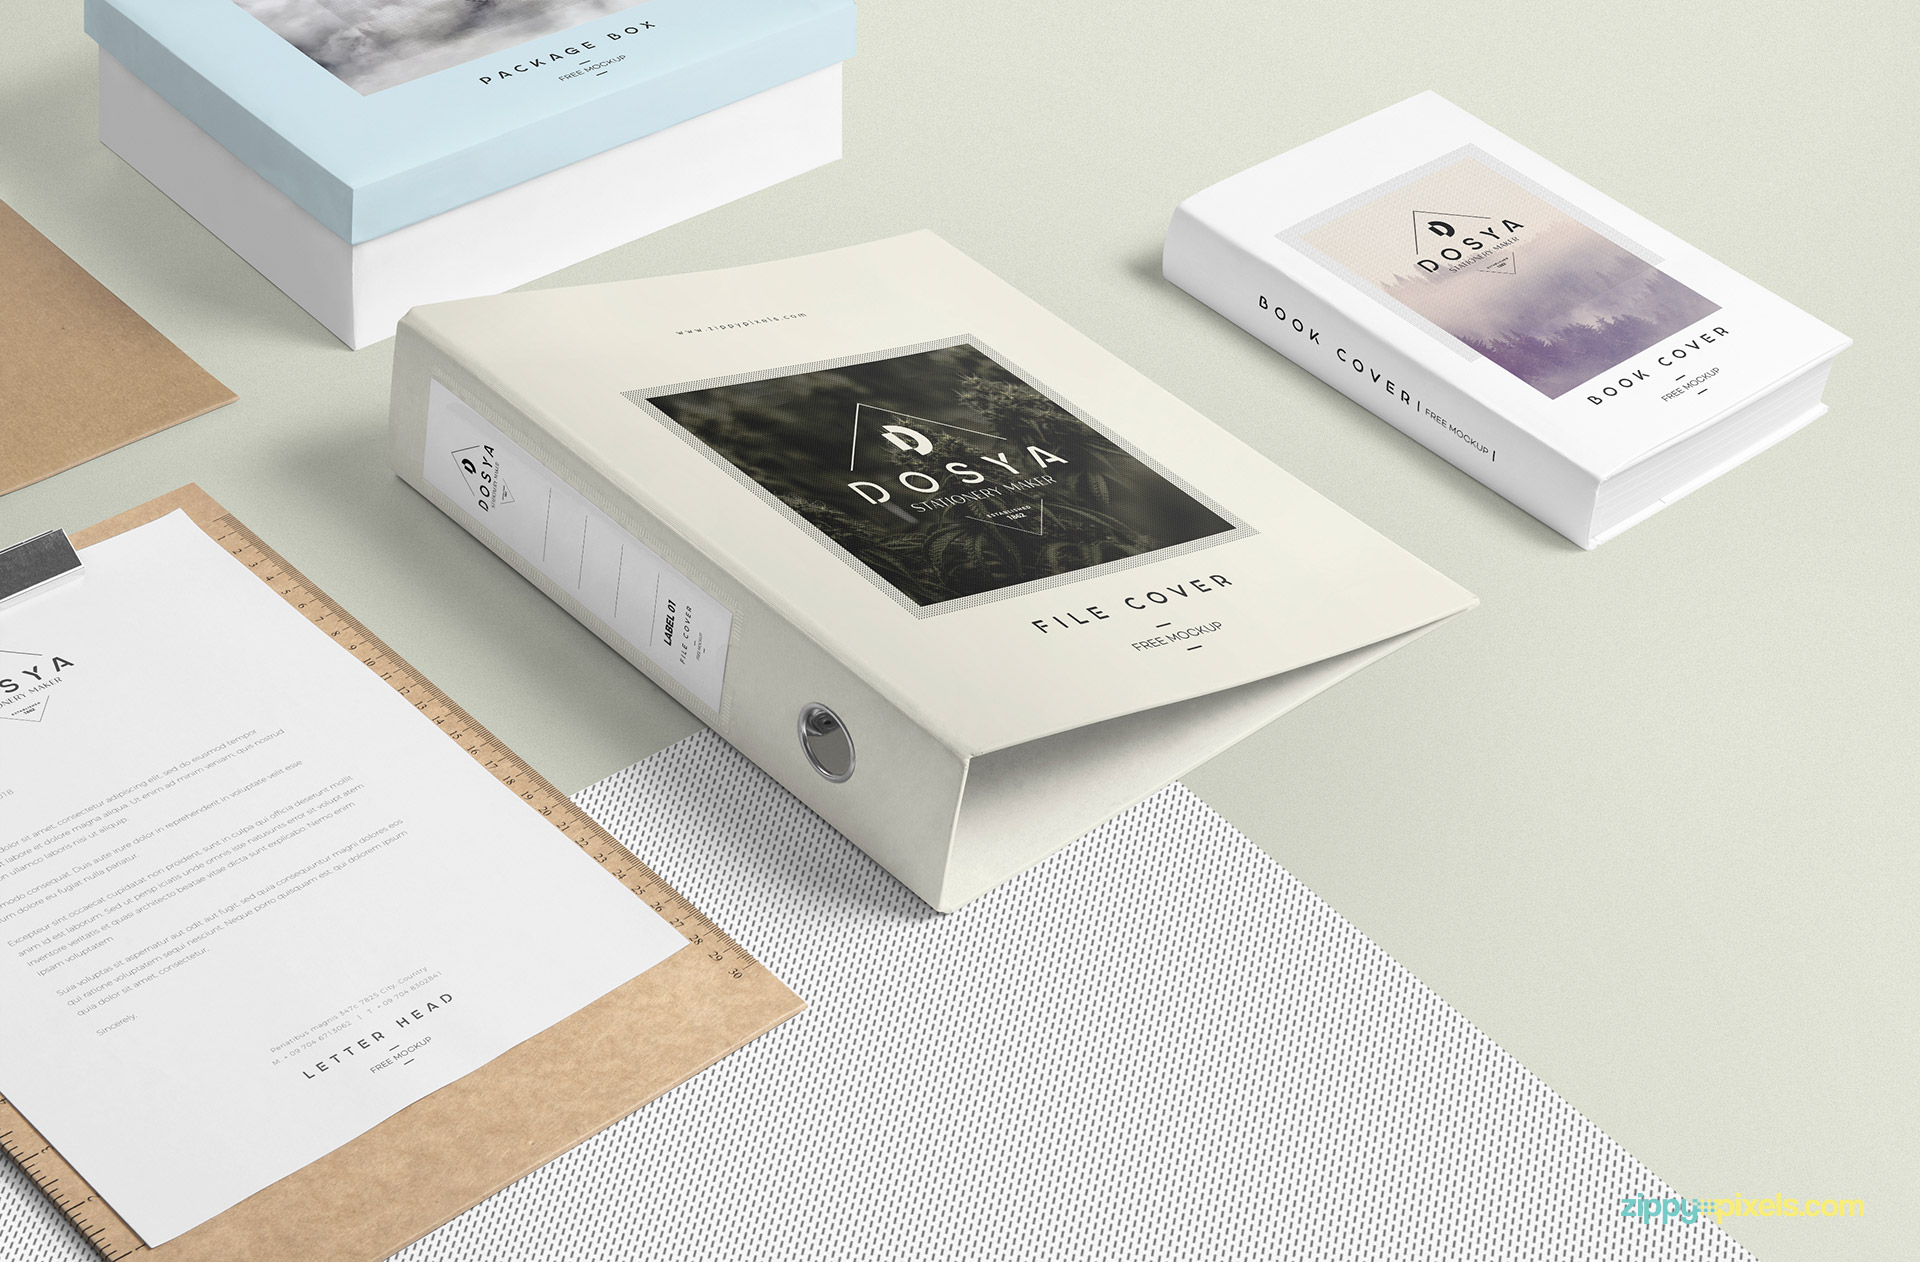 Box file mockup scene including box file, book, package box and paper on a clipboard.